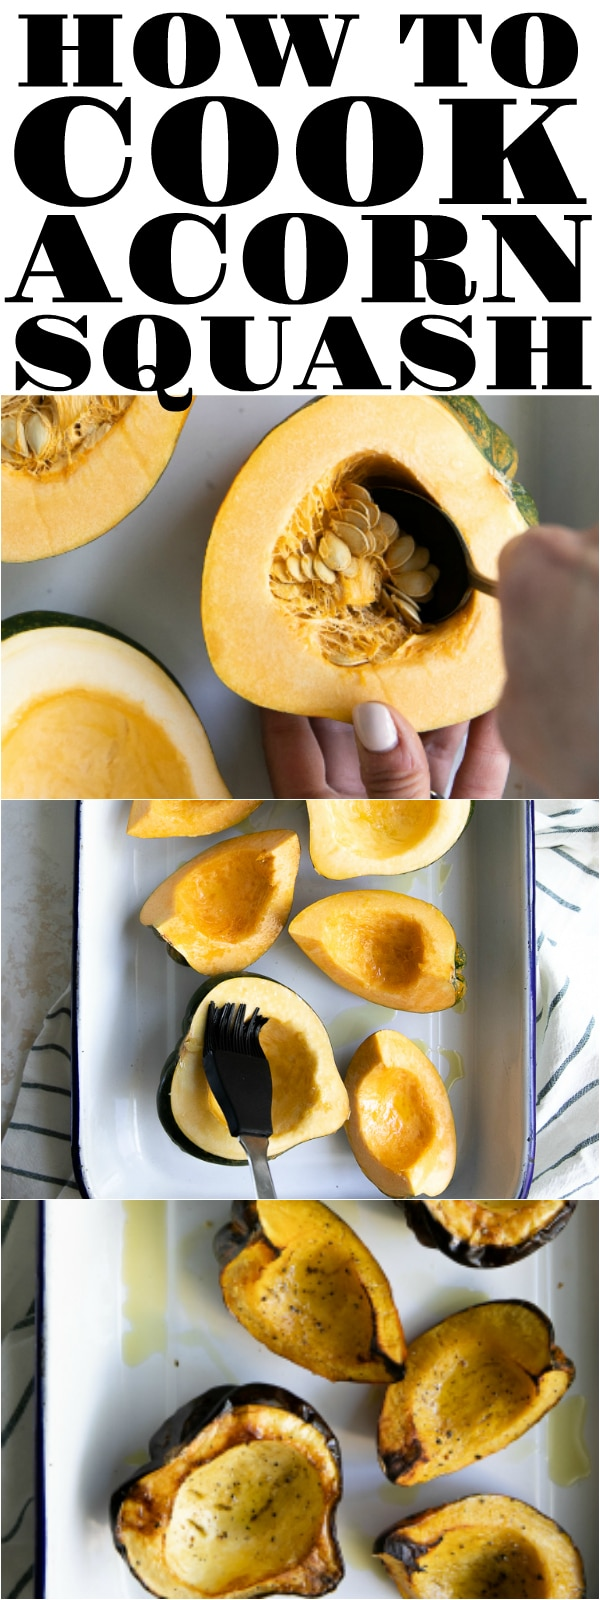 How to Roast an Acorn Squash #acornsquash #squash #howtocookacornsquash #bakedsquash #vegetarian #easyrecipe | For this recipe and more visit, https://theforkedspoon.com